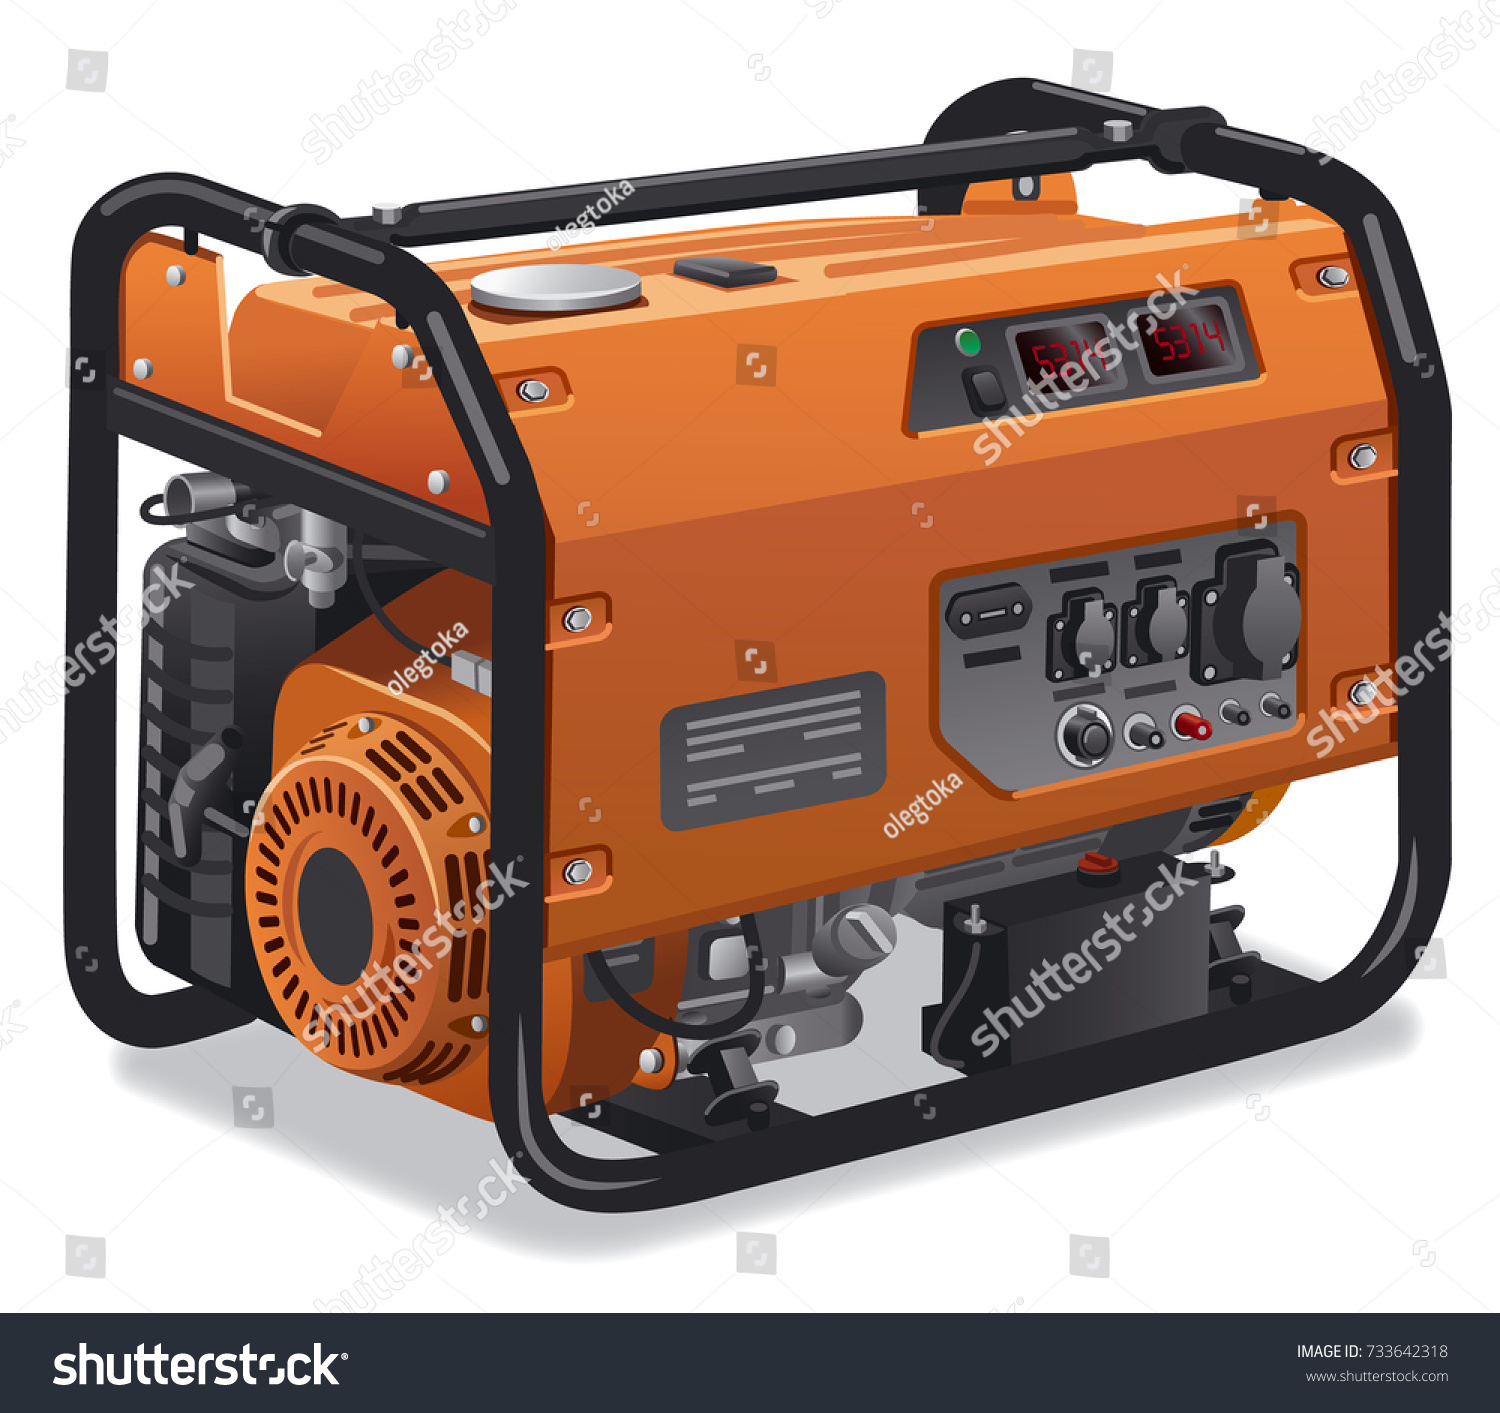 Illustration Industrial Home Immovable Power Generator Stock